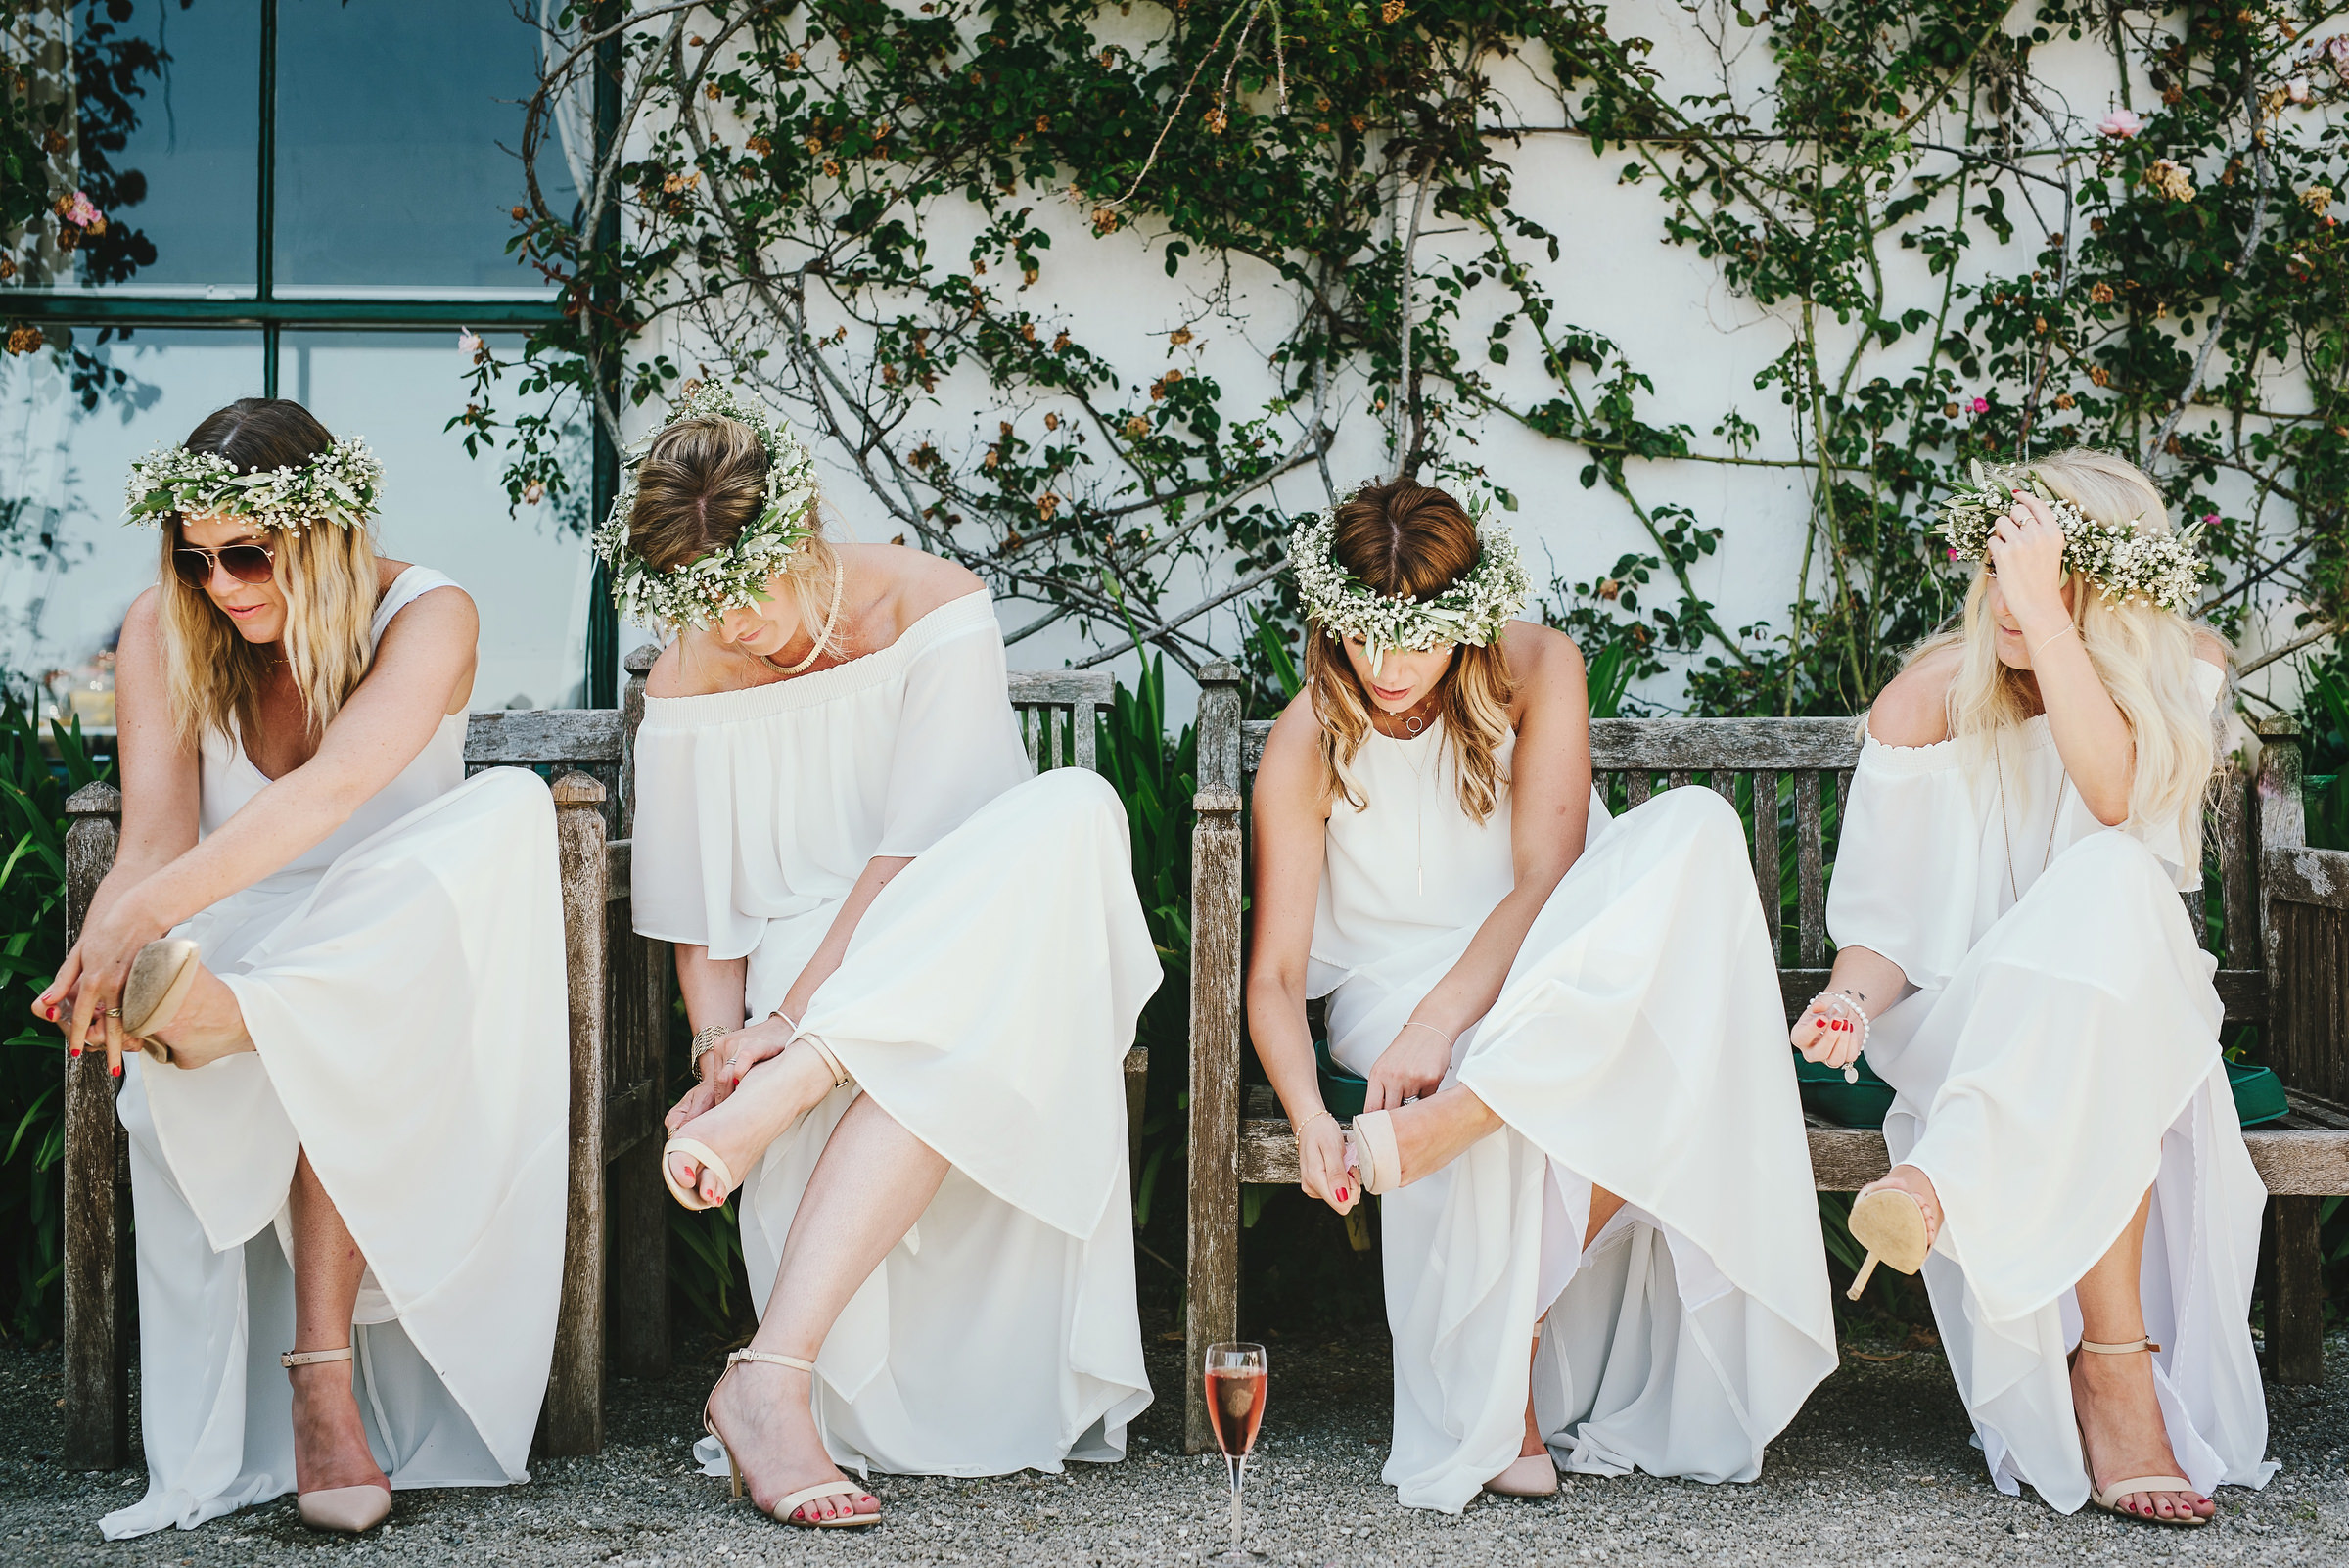 Bridal party putting on their shoes - photo by Andy Gaines Photography